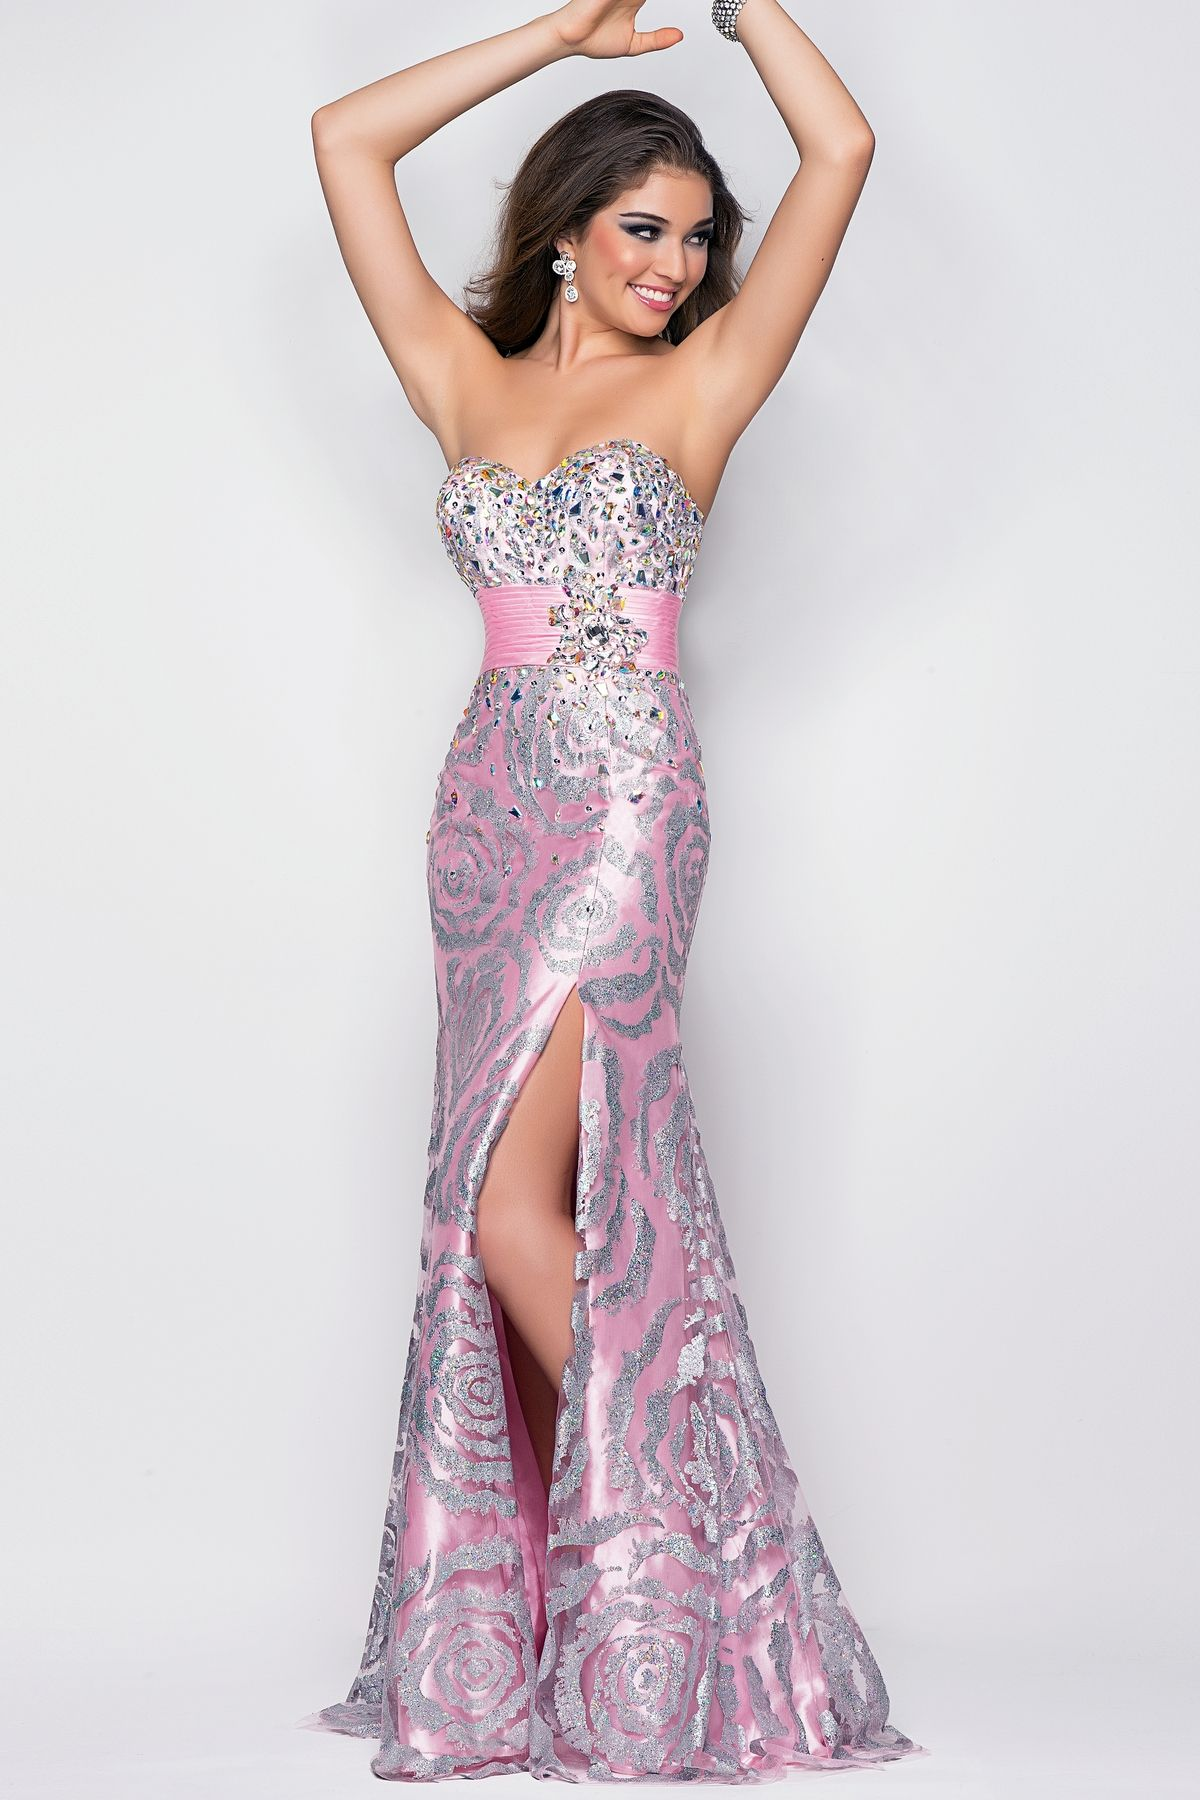 Beaded swirl drama in a formal prom dress this powerful gown flows